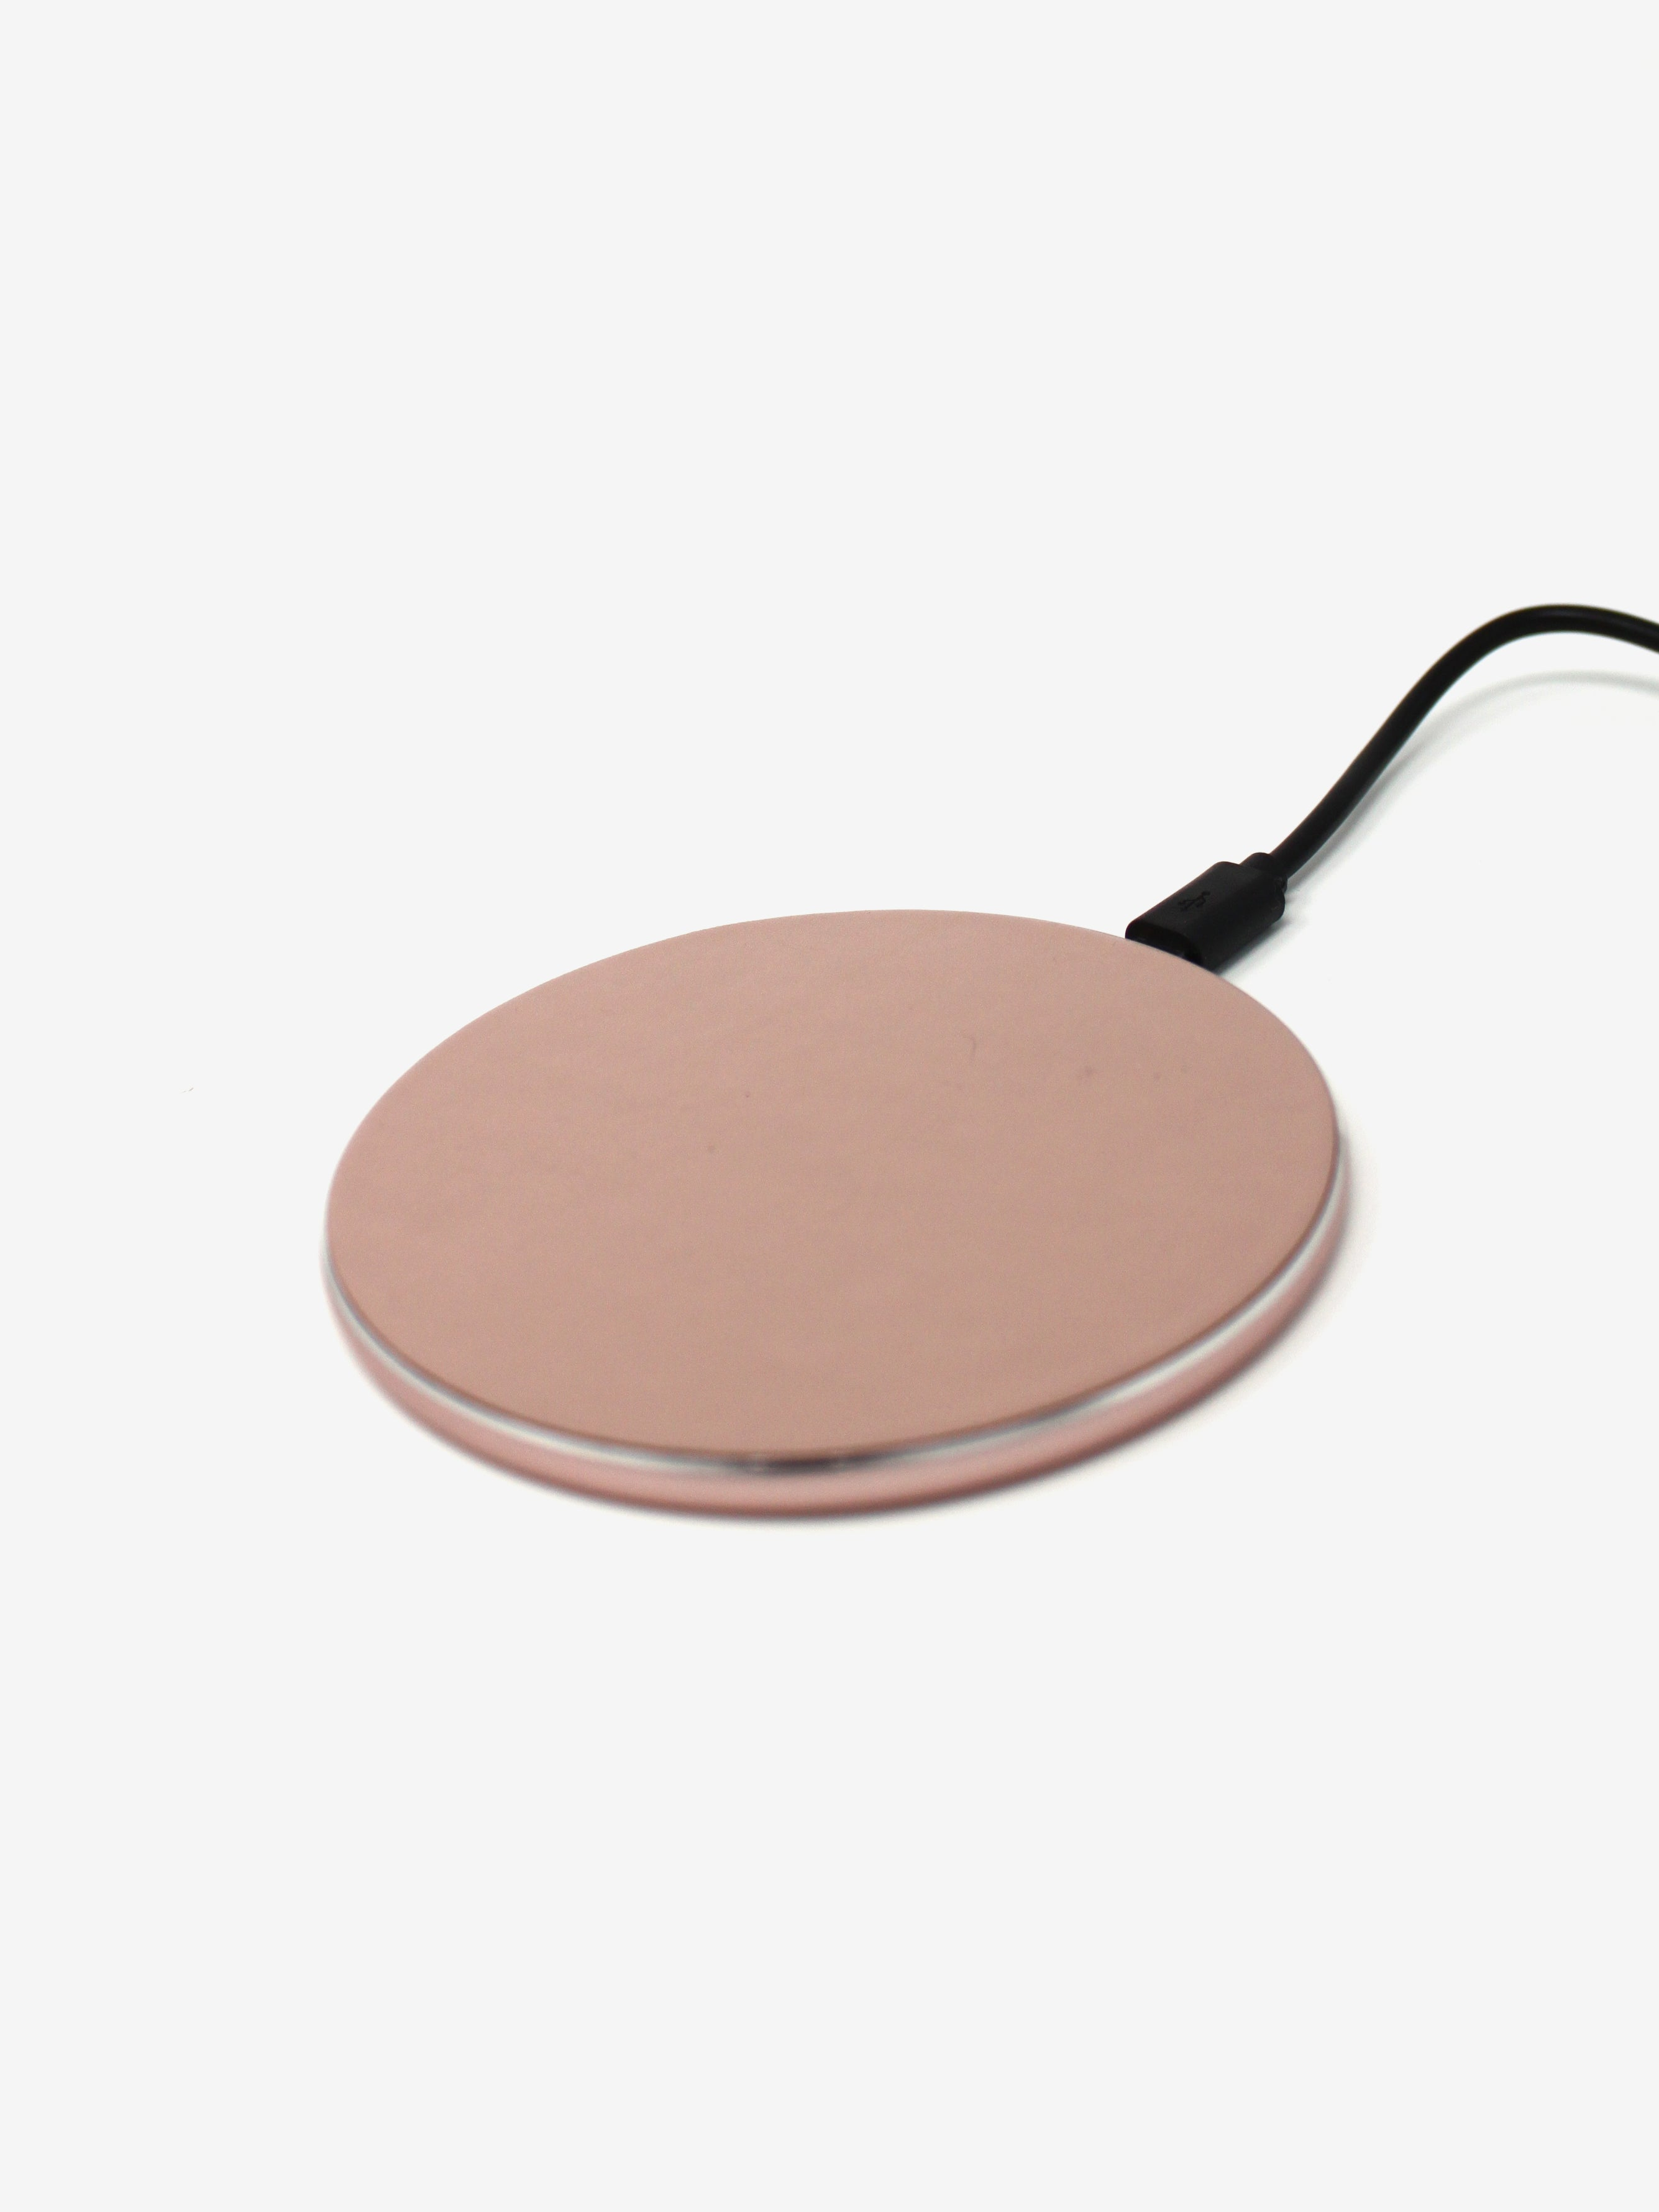 Qi Wireless Quick Charger in Rose Gold